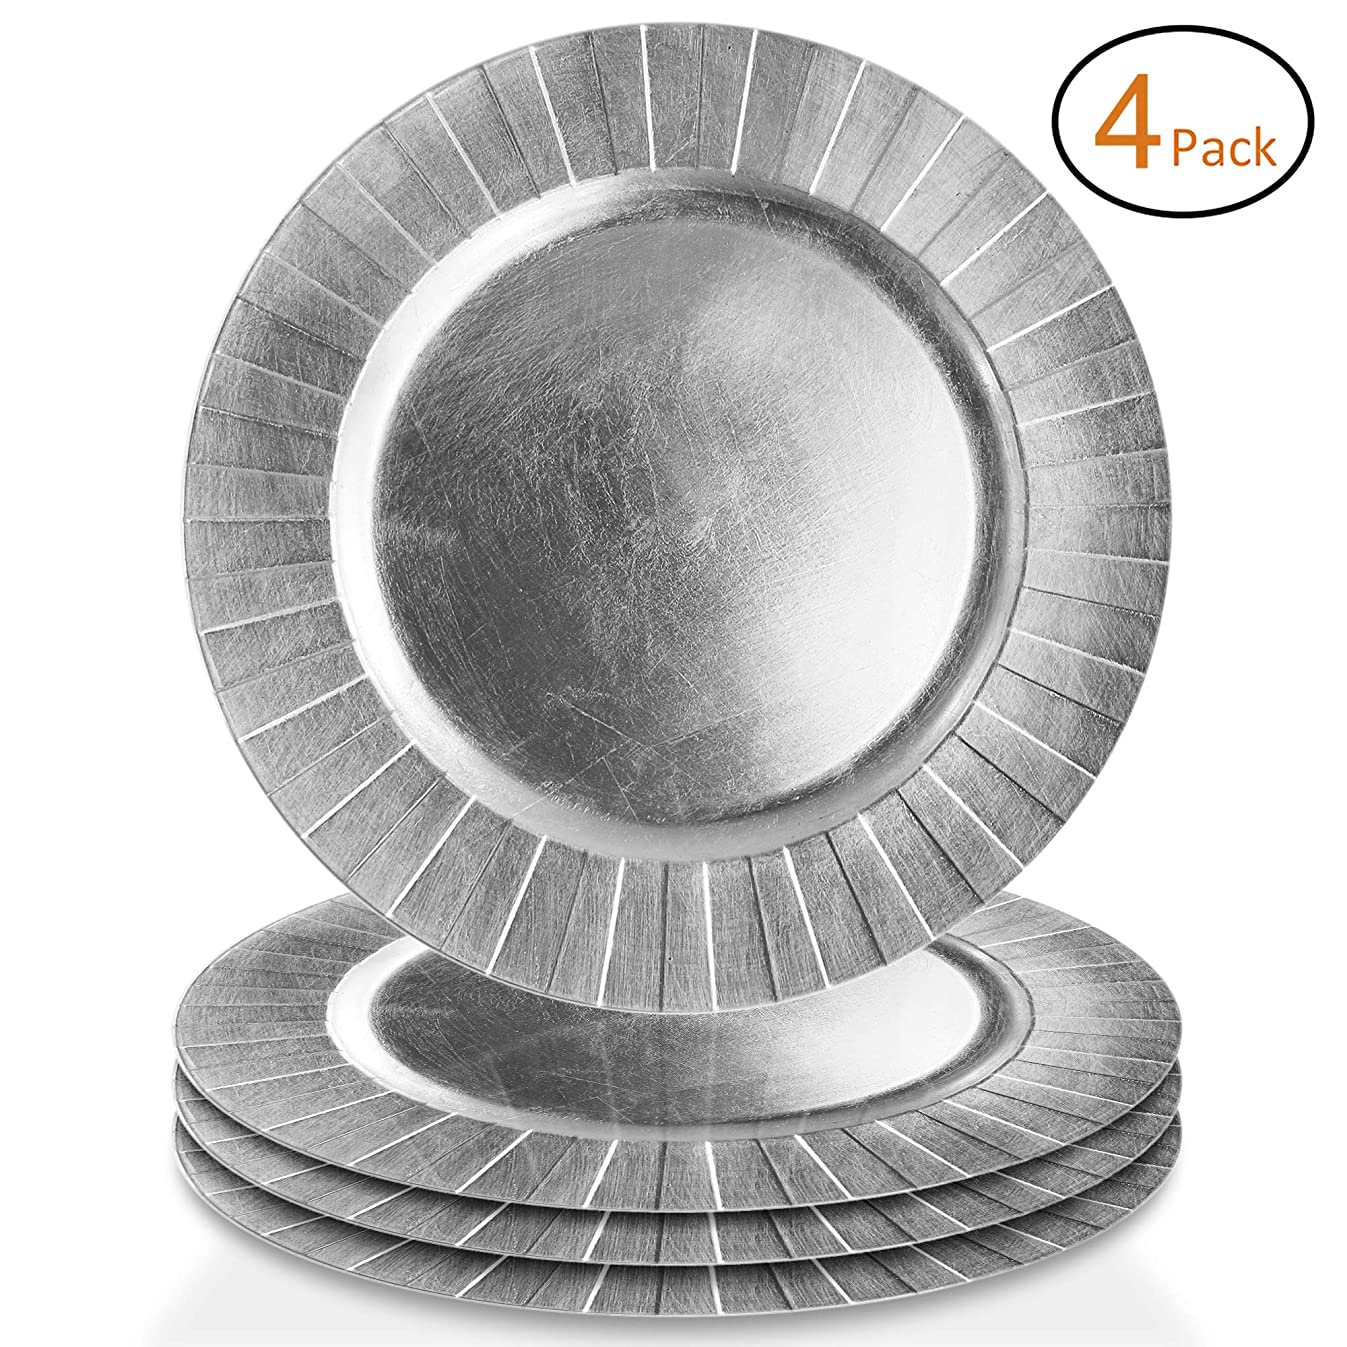 American Atelier Charger Plates Burst Melamine 13 Inch, Silver, Set of 4